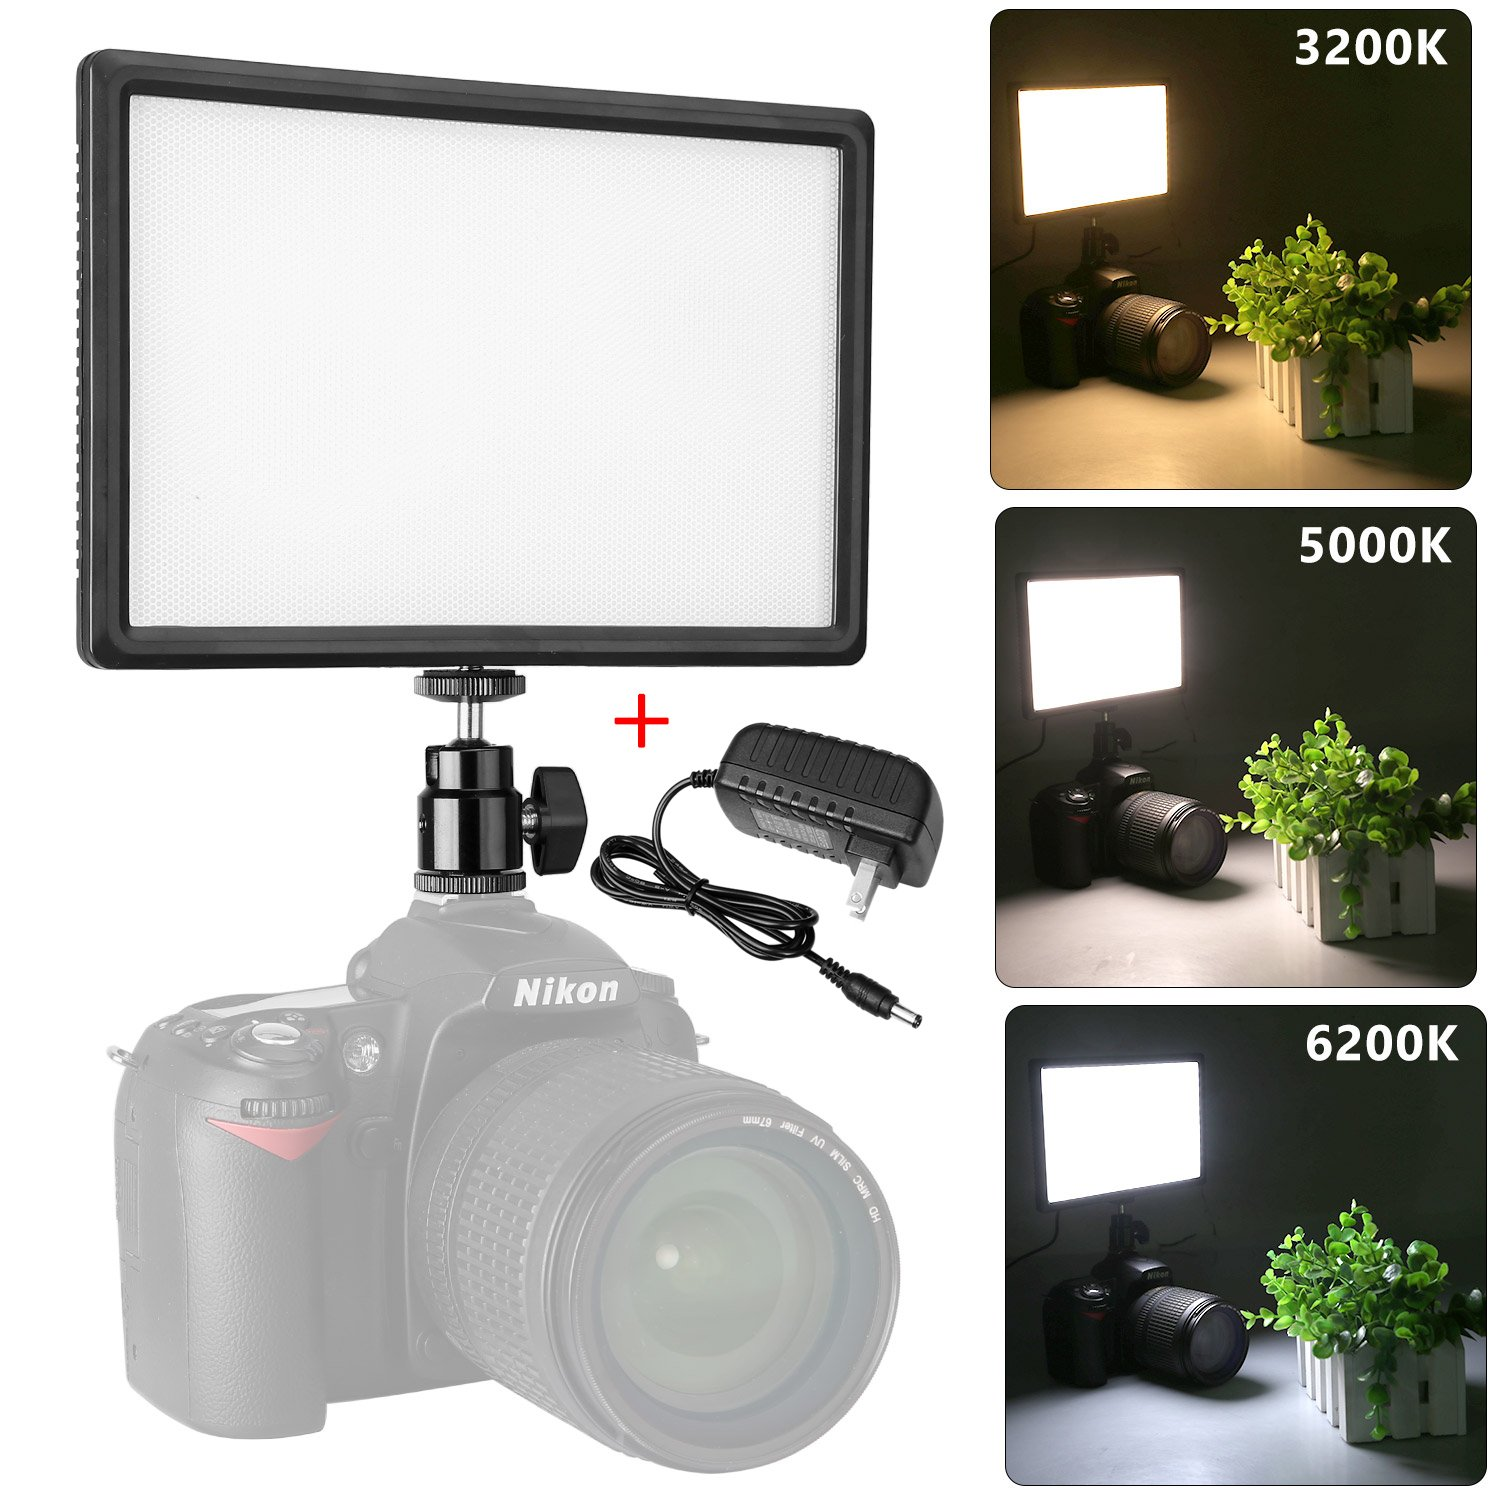 Pangshi Super Slim Dimmable LED Light Panel 3200K-6200K LED Video Light LCD display screen, with hot shoe ball mount, Color temperature and Brightness can be adjusted